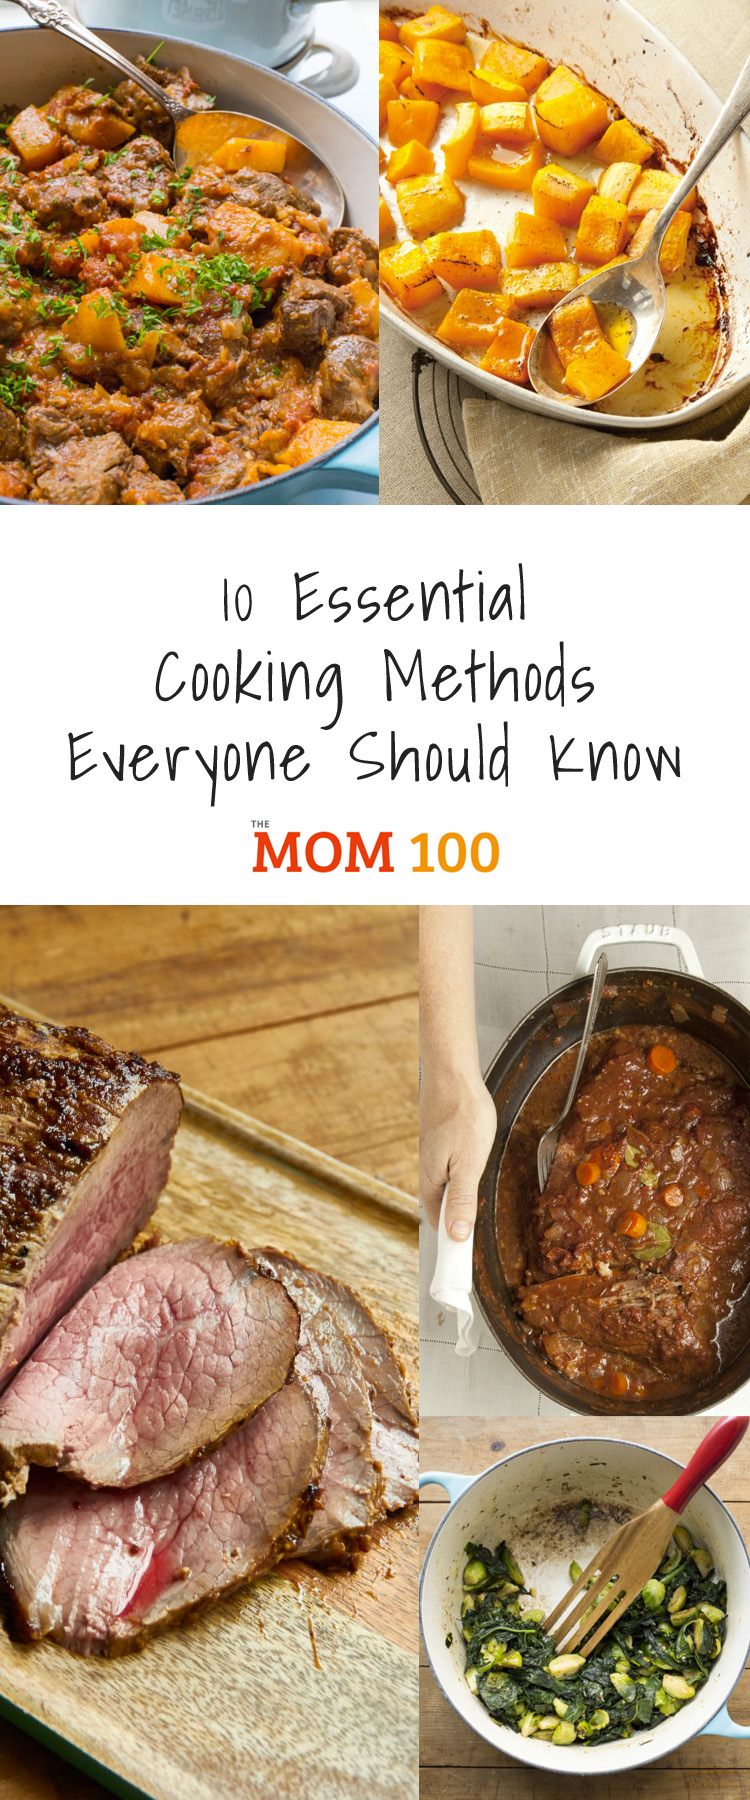 10 Essential Cooking Methods Everyone Should Know